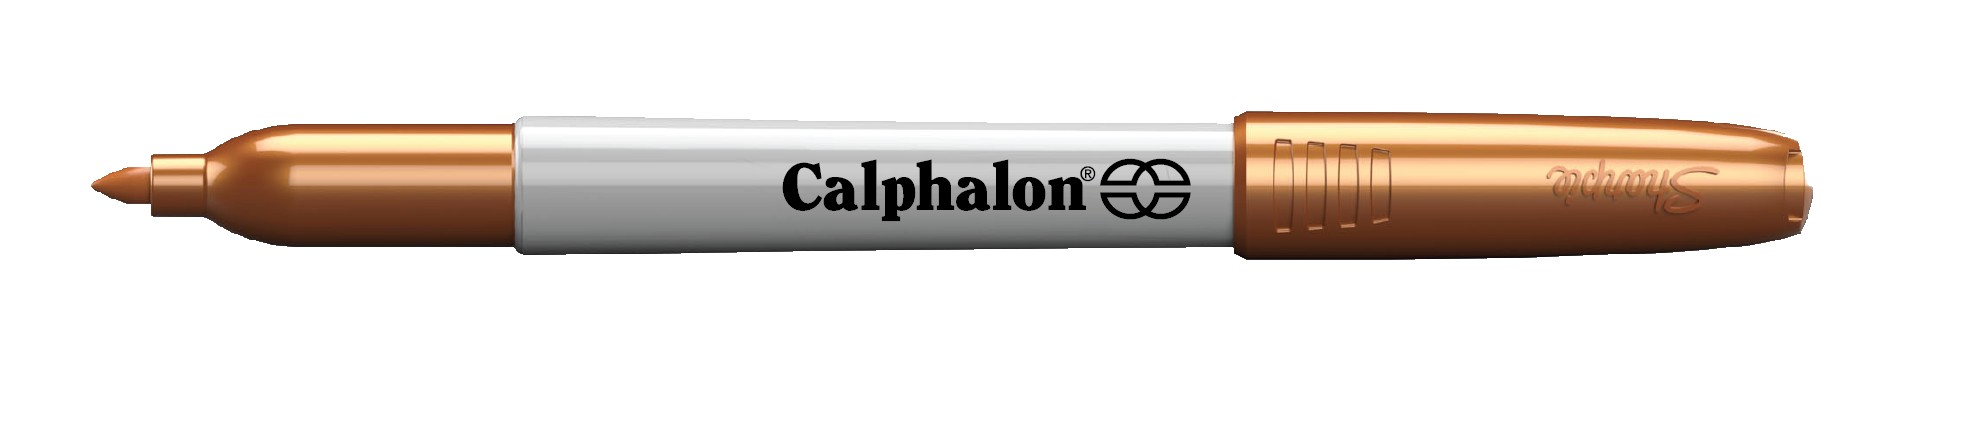 784462429-164 - Sharpie® Fine Point Metallic Permanent Marker - thumbnail